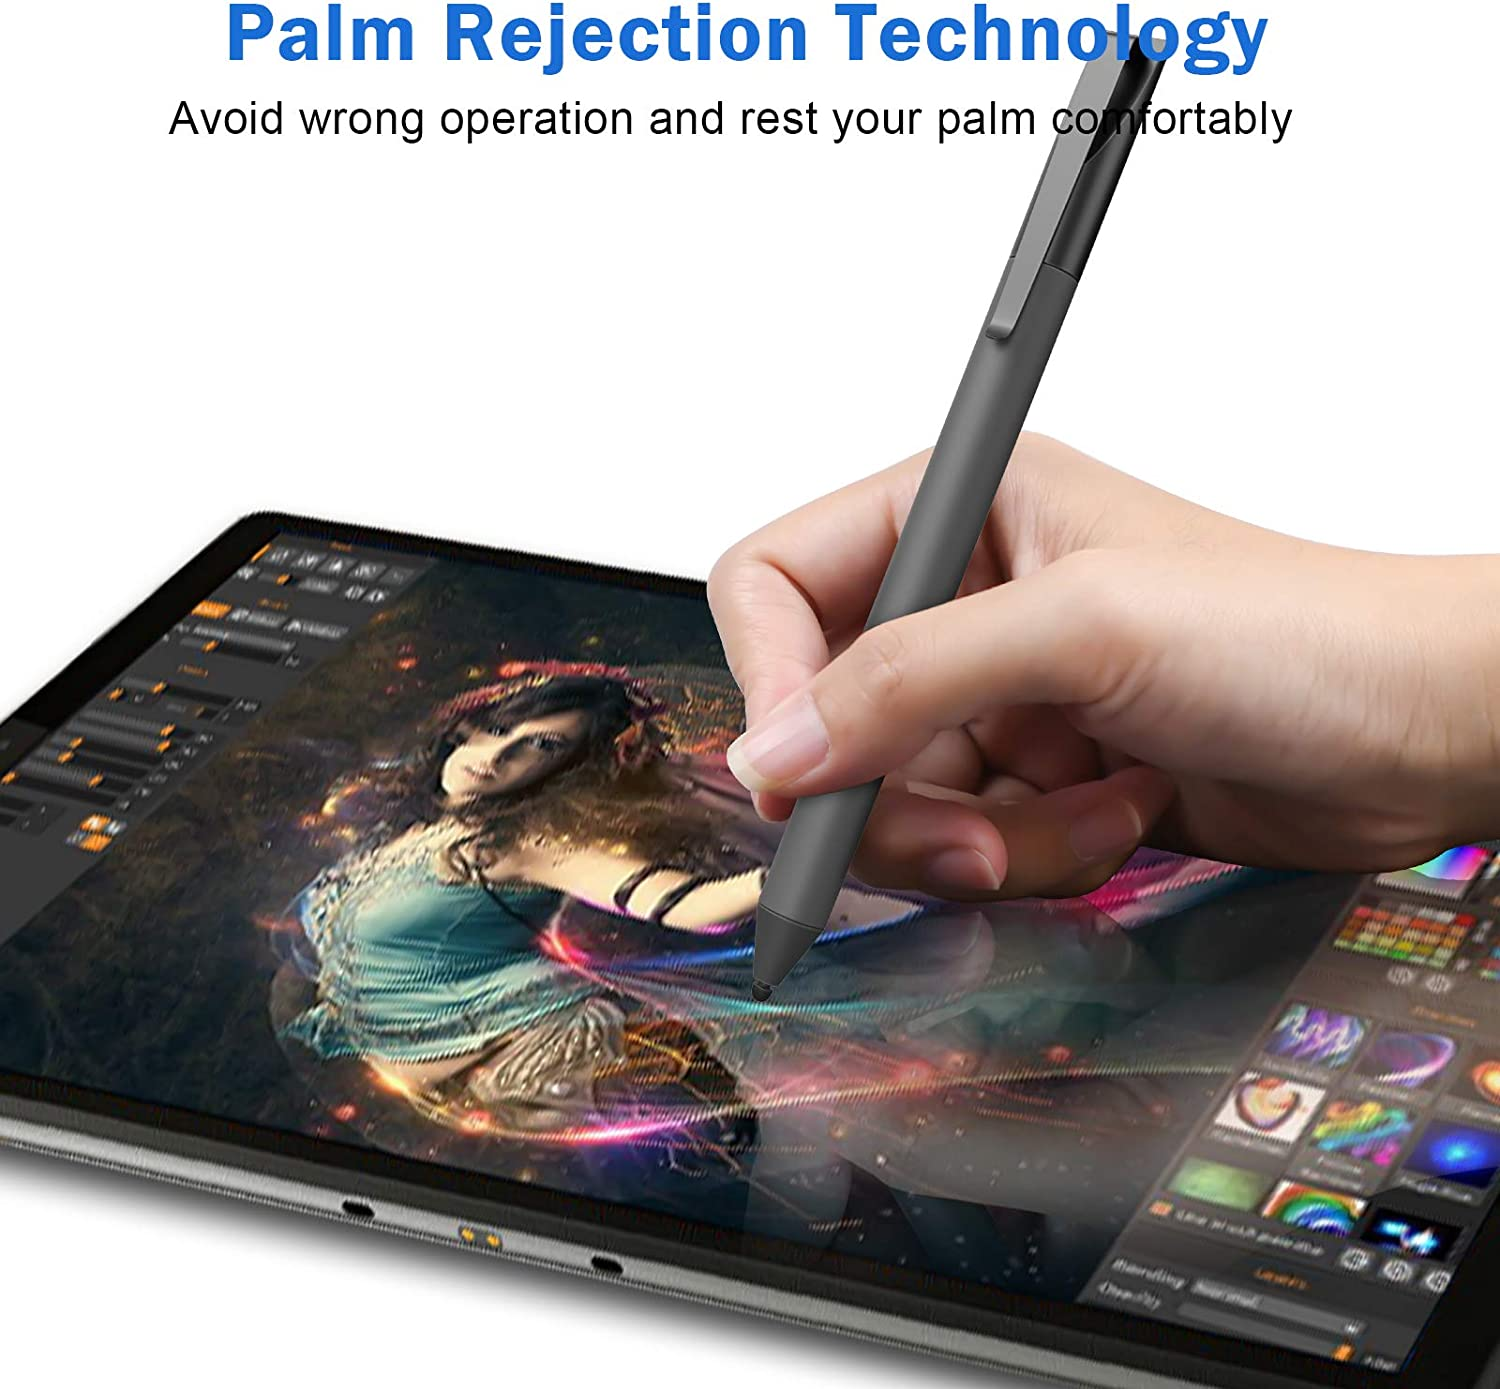 Buy Usi Stylus Pen For Chromebook With 4096 Levels Pressure For Hp Chromebook X360 Len Ovo Chromebook Asus Chromebook Flip And Acer Chromebook Series Including Aaaa Battery Spare Tip Online In Turkey